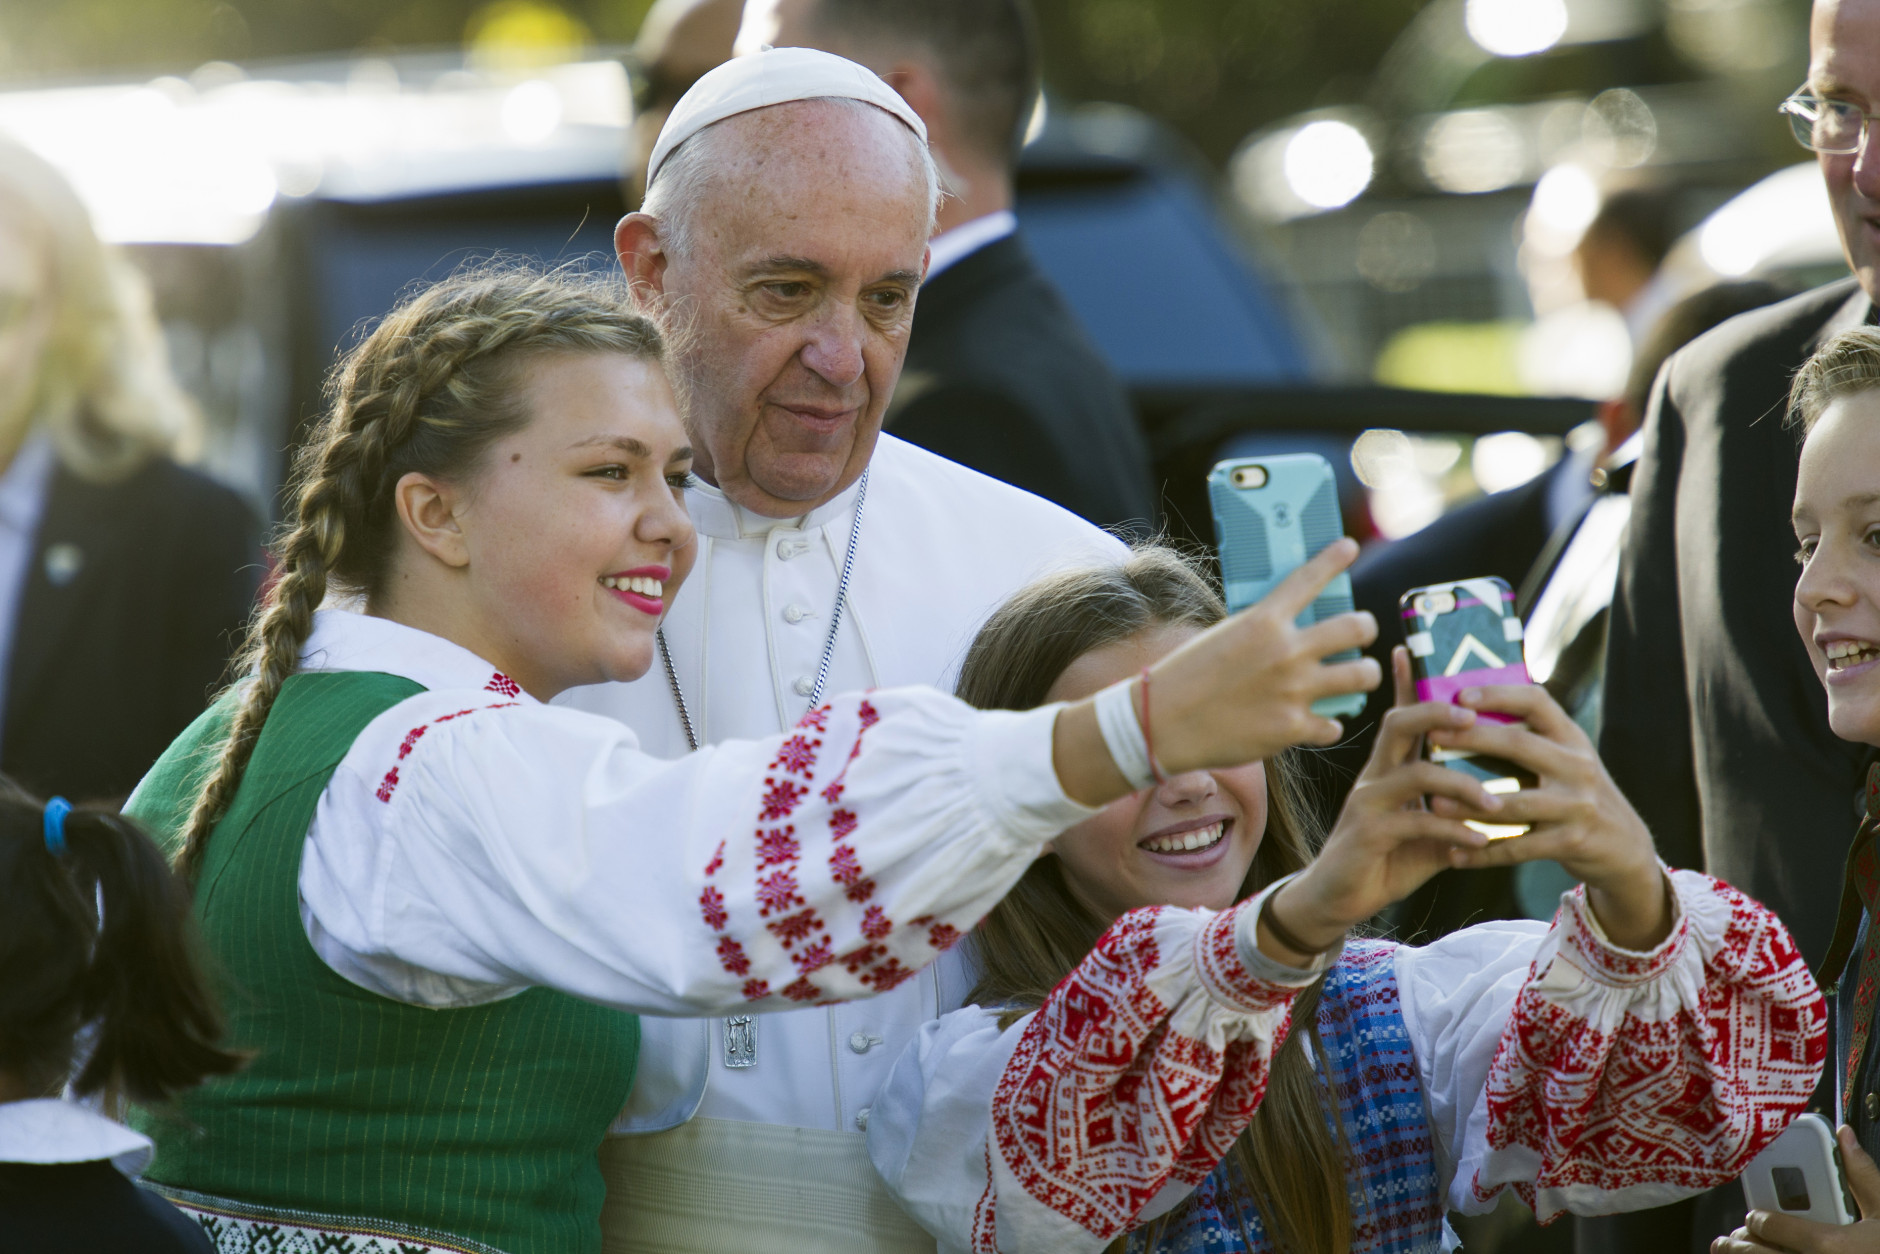 Children of parents who work at the Lithuanian Embassy take selfies with Pope Francis as he departs the Apostolic Nunciature, the Vatican's diplomatic mission in Washington, Wednesday, Sept. 23, 2015. Pope Francis will visit the White House where President Barack Obama will host a state arrival ceremony.  (AP Photo/Cliff Owen)